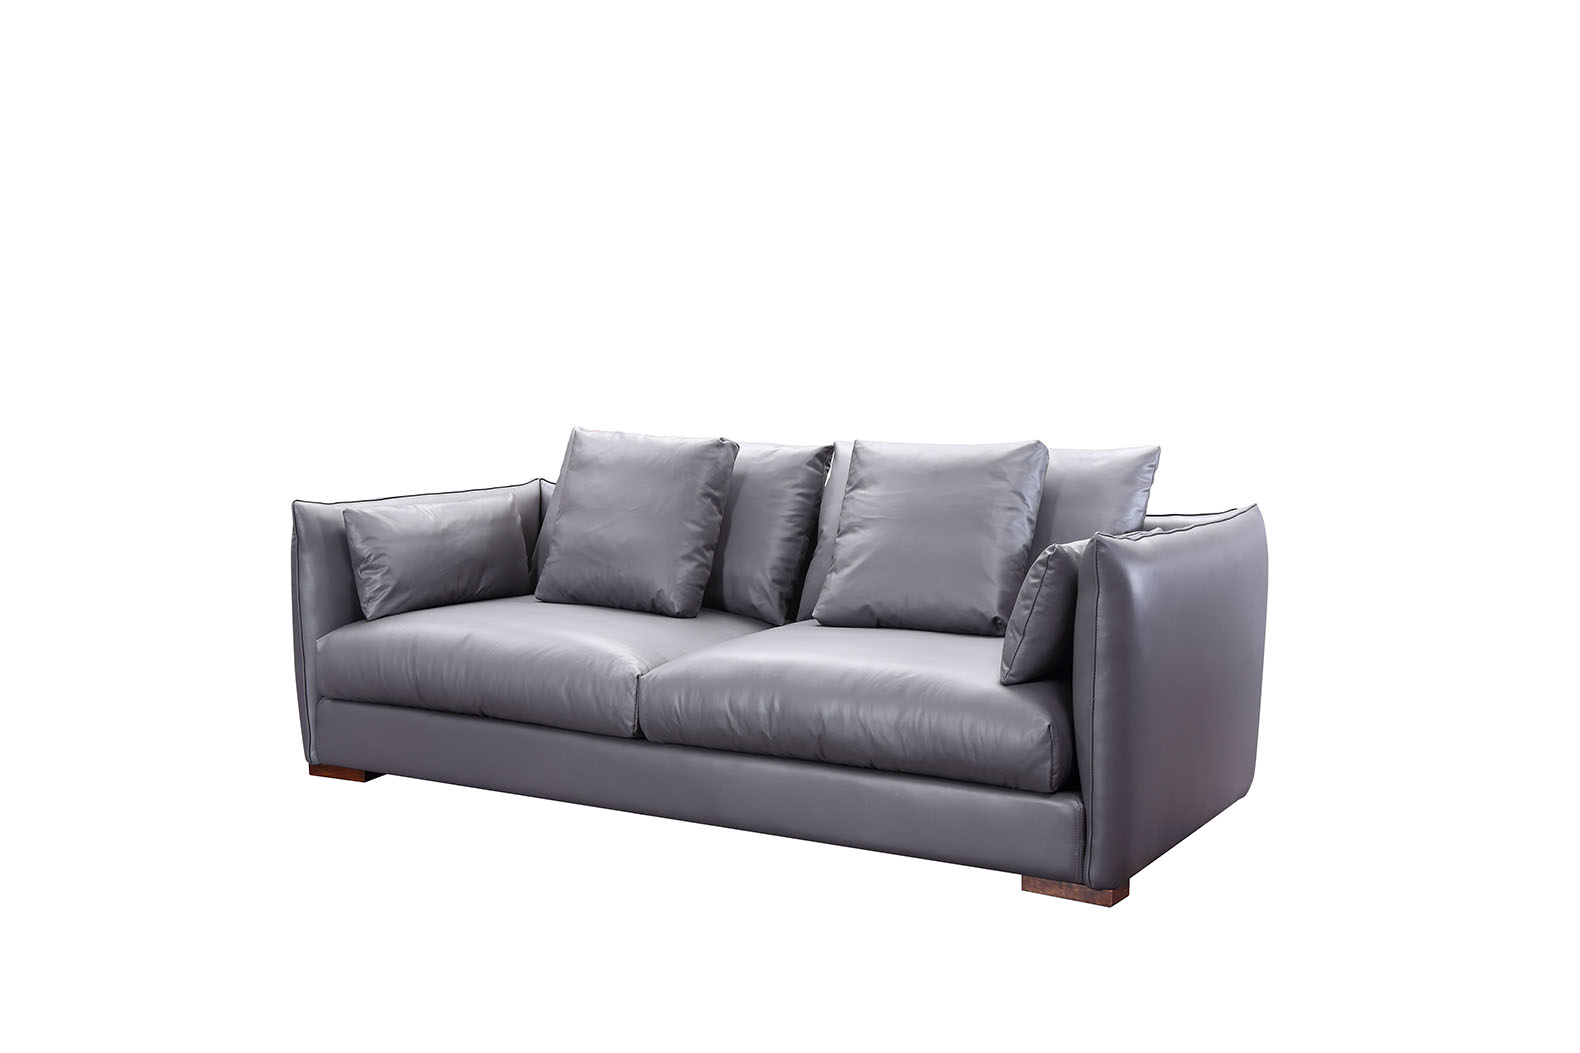 Excellent Dark Gray Leather Three Seat Sofa Alphanode Cool Chair Designs And Ideas Alphanodeonline